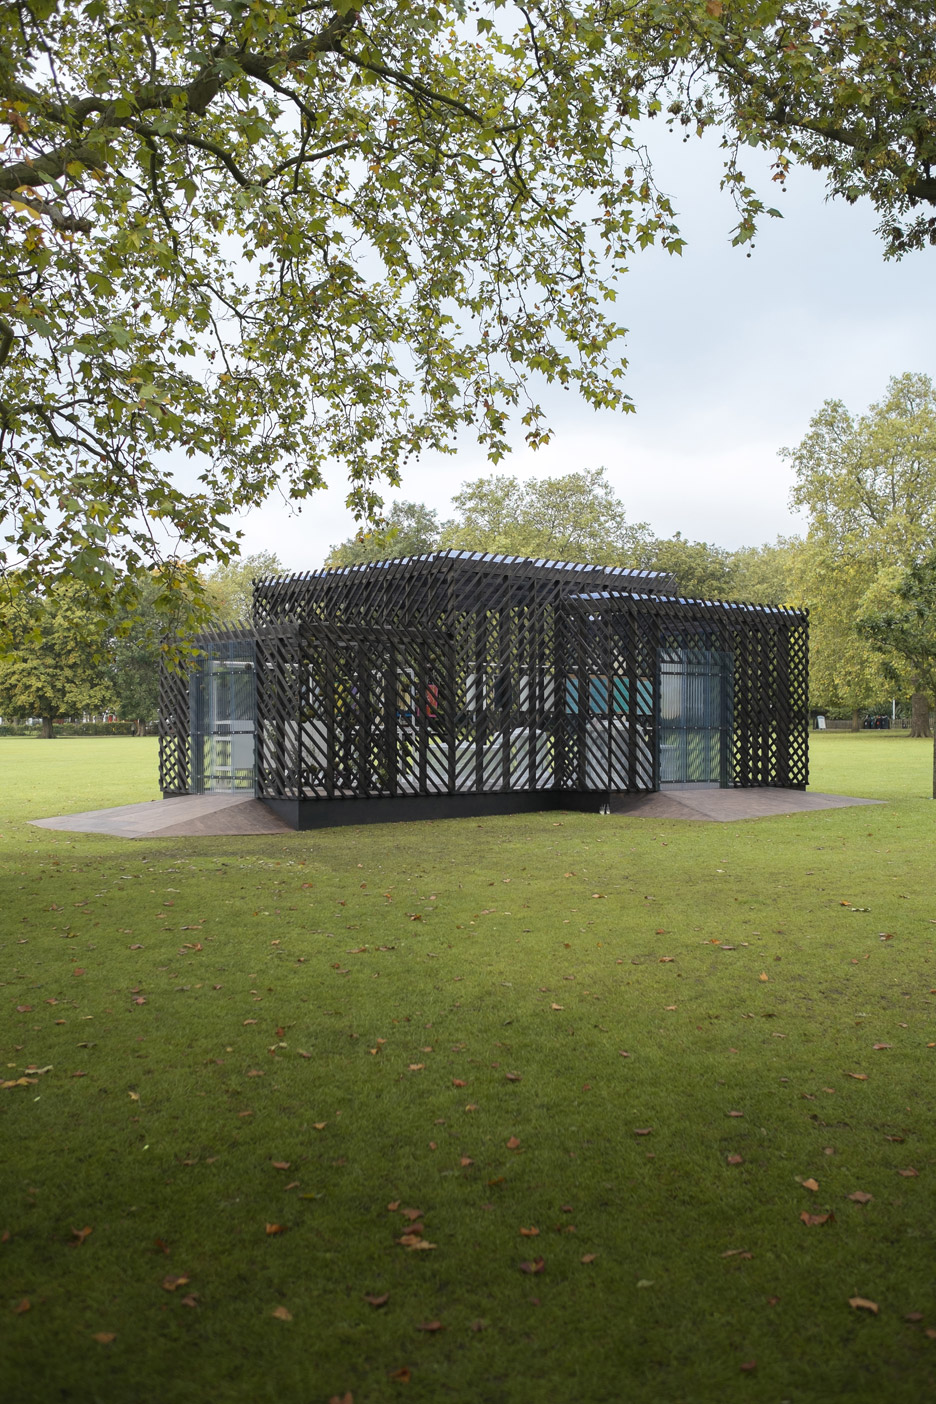 Queens-Park-Pavilion-by-Claridge-Architects_dezeen_936_1